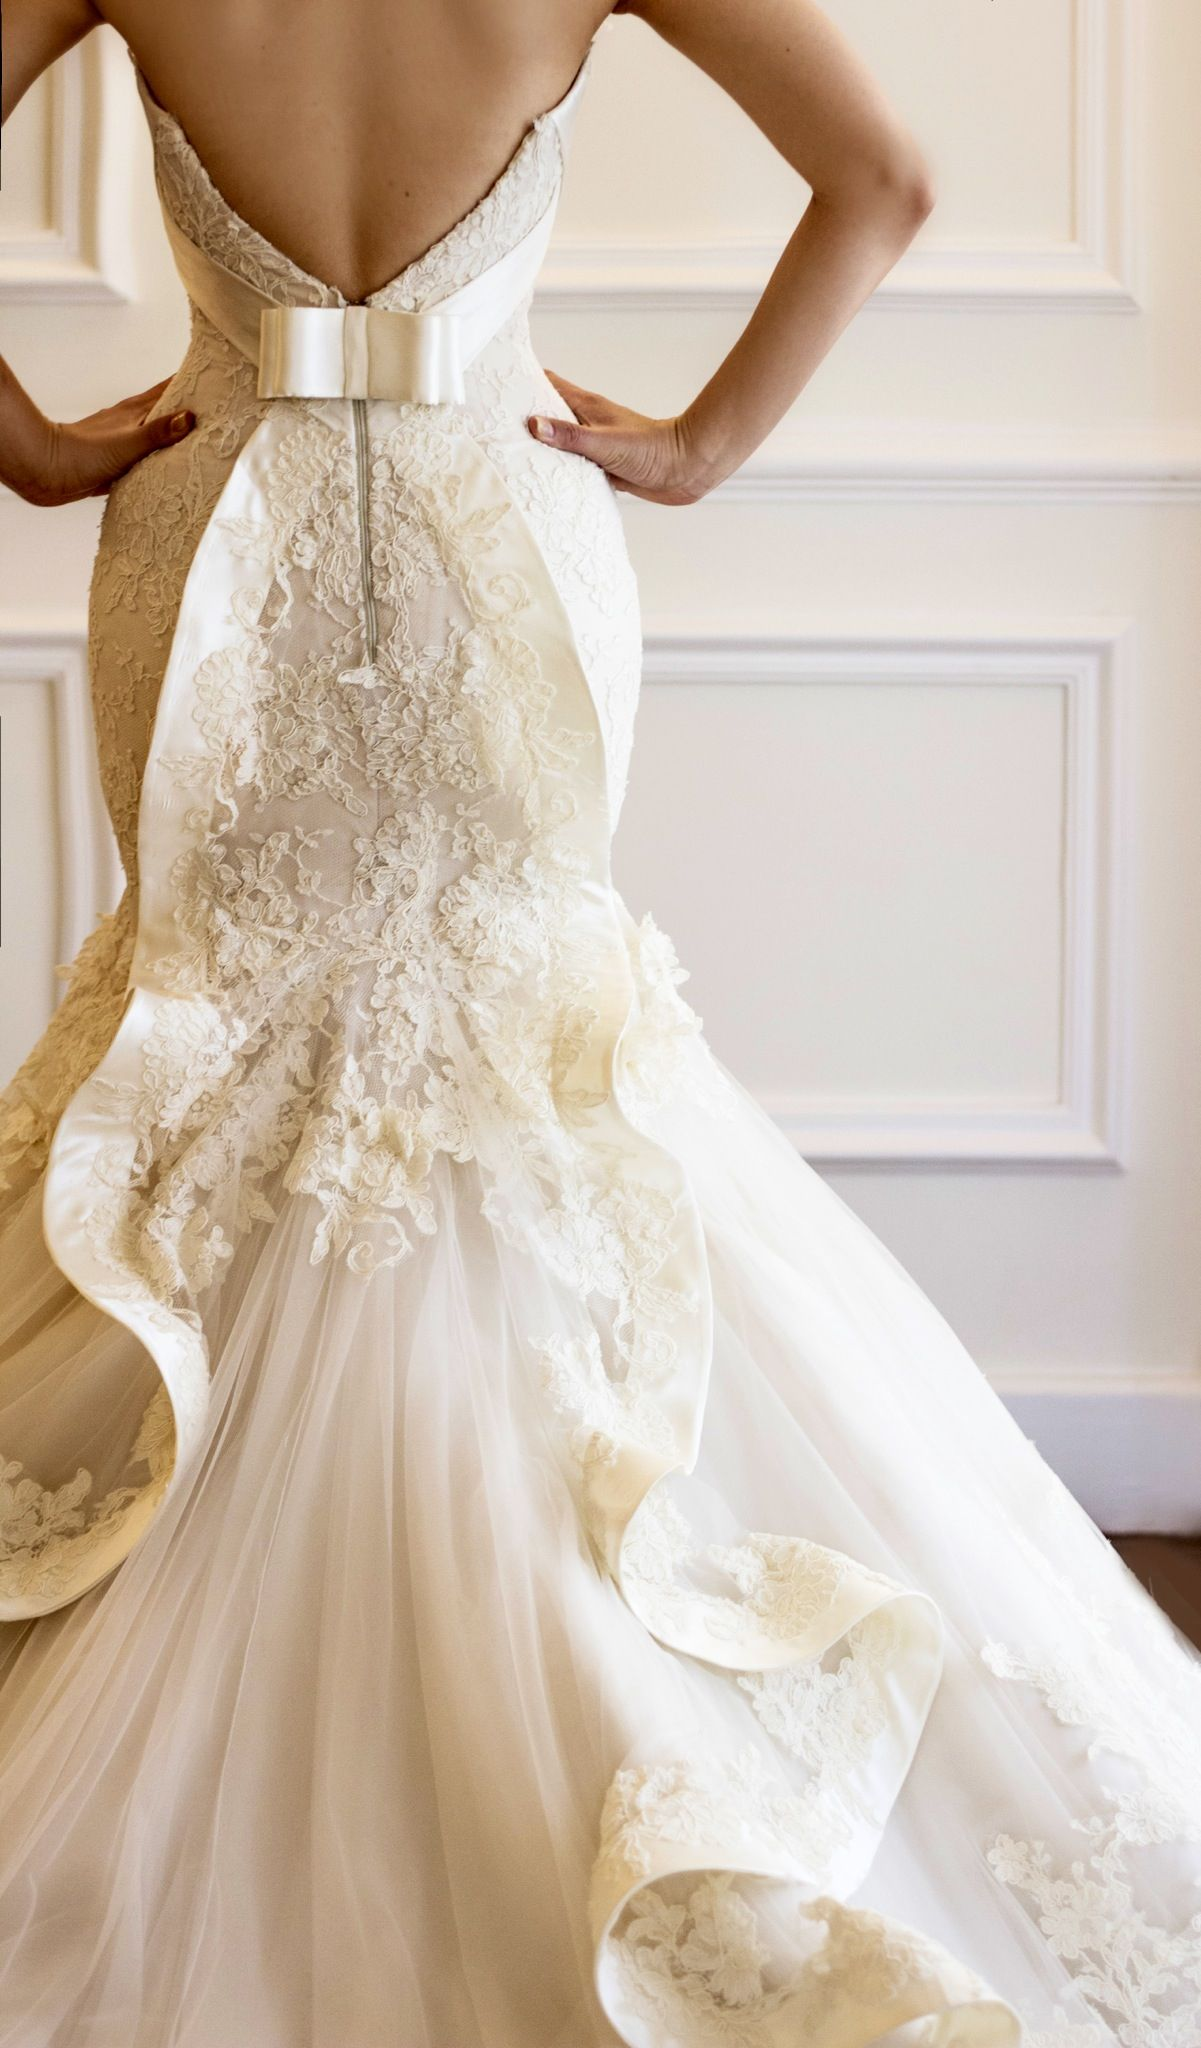 Unique styles of wedding dresses